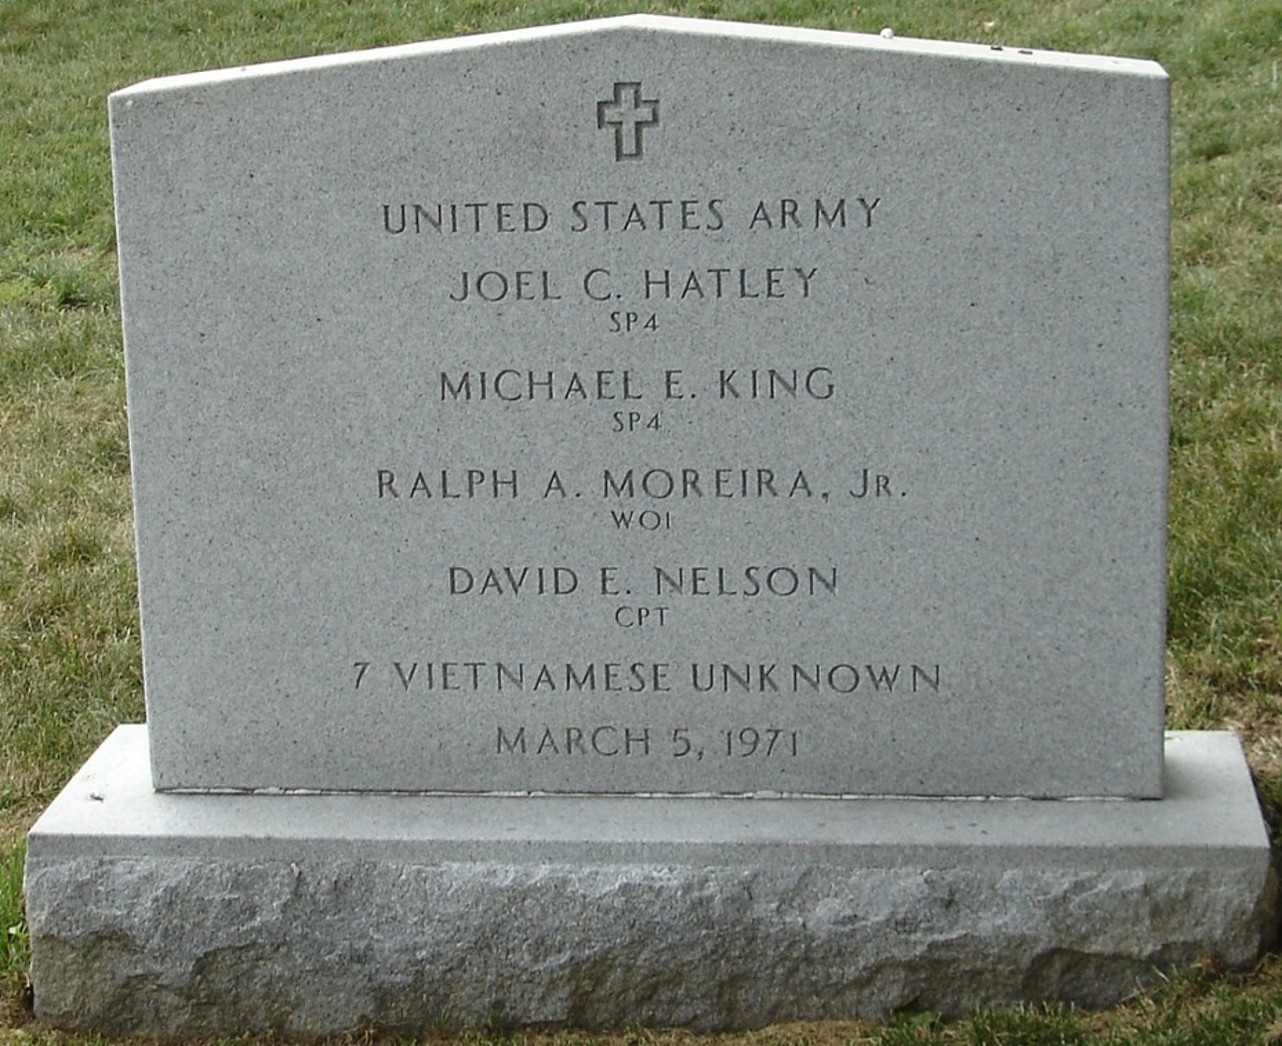 https://i2.wp.com/arlingtoncemetery.net/army-group-03051971-gravesite-photo-august-2006-001.jpg